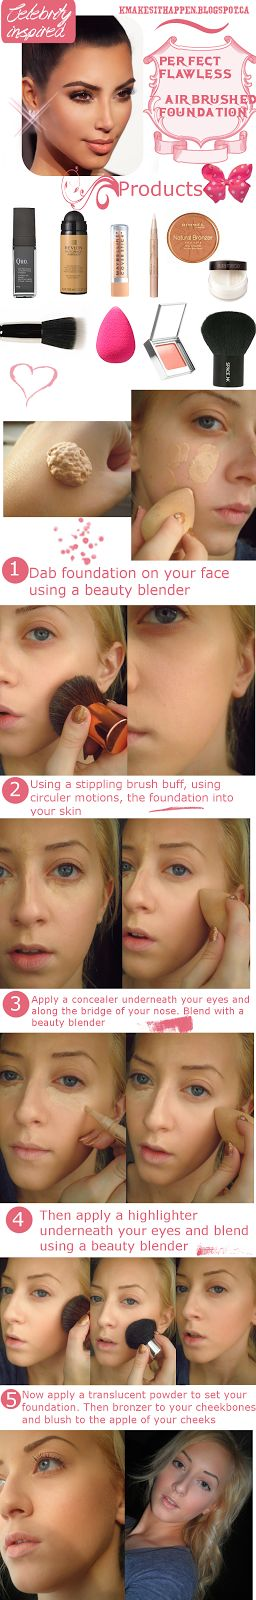 Makeup tricks: flawless foundation